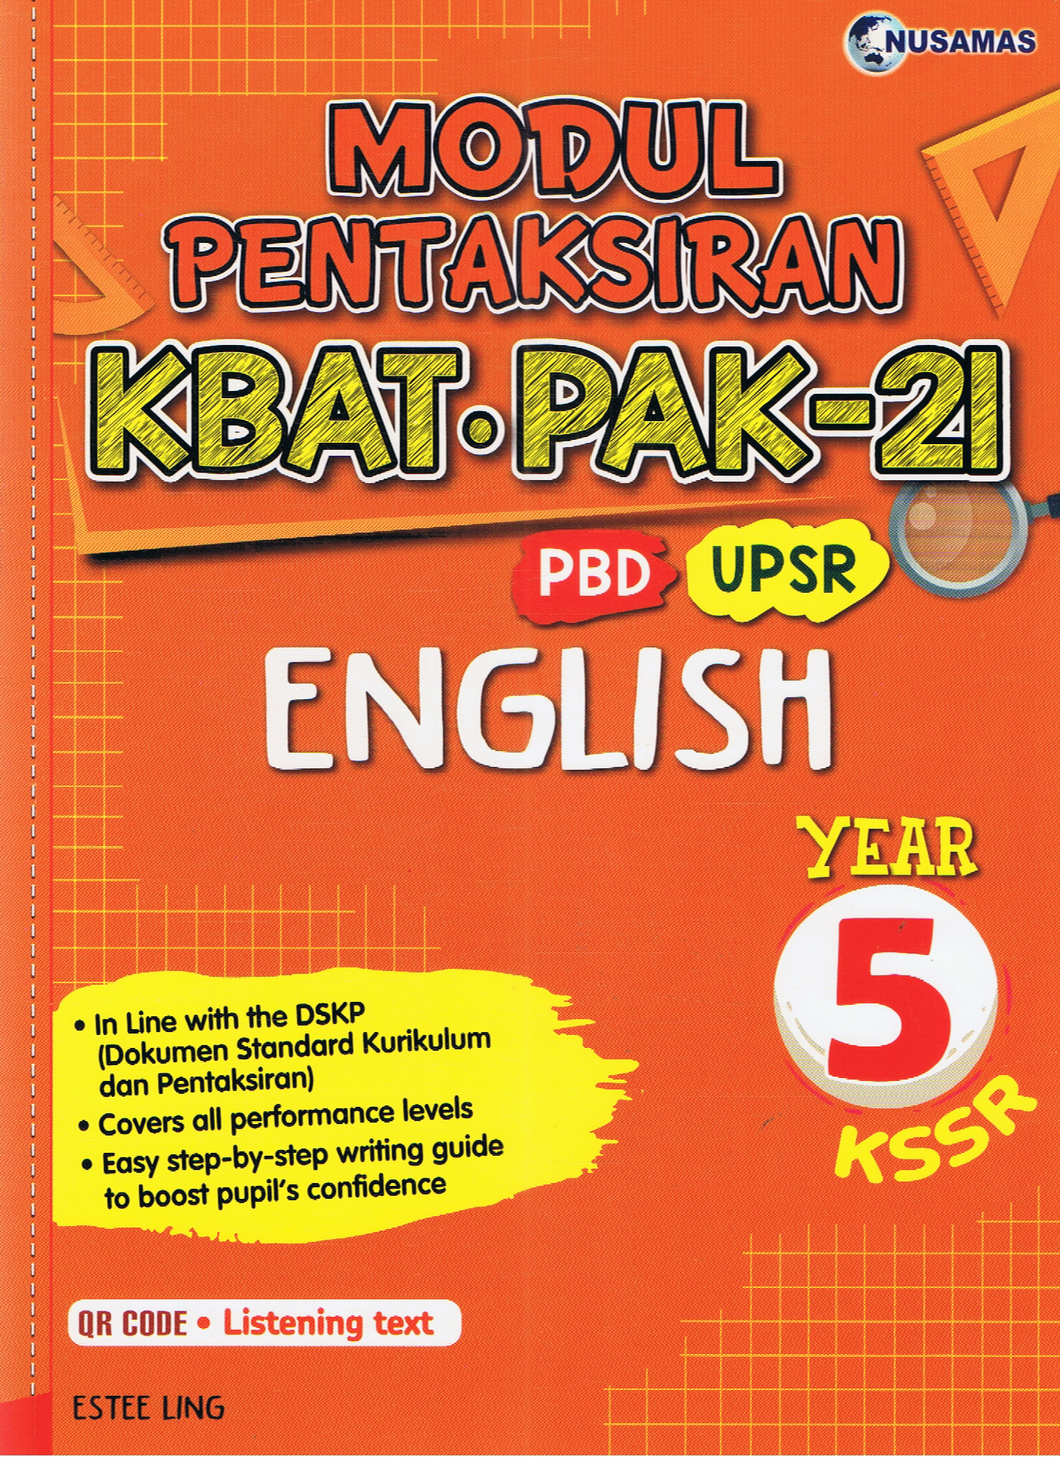 Modul Pentaksiran English Year 5